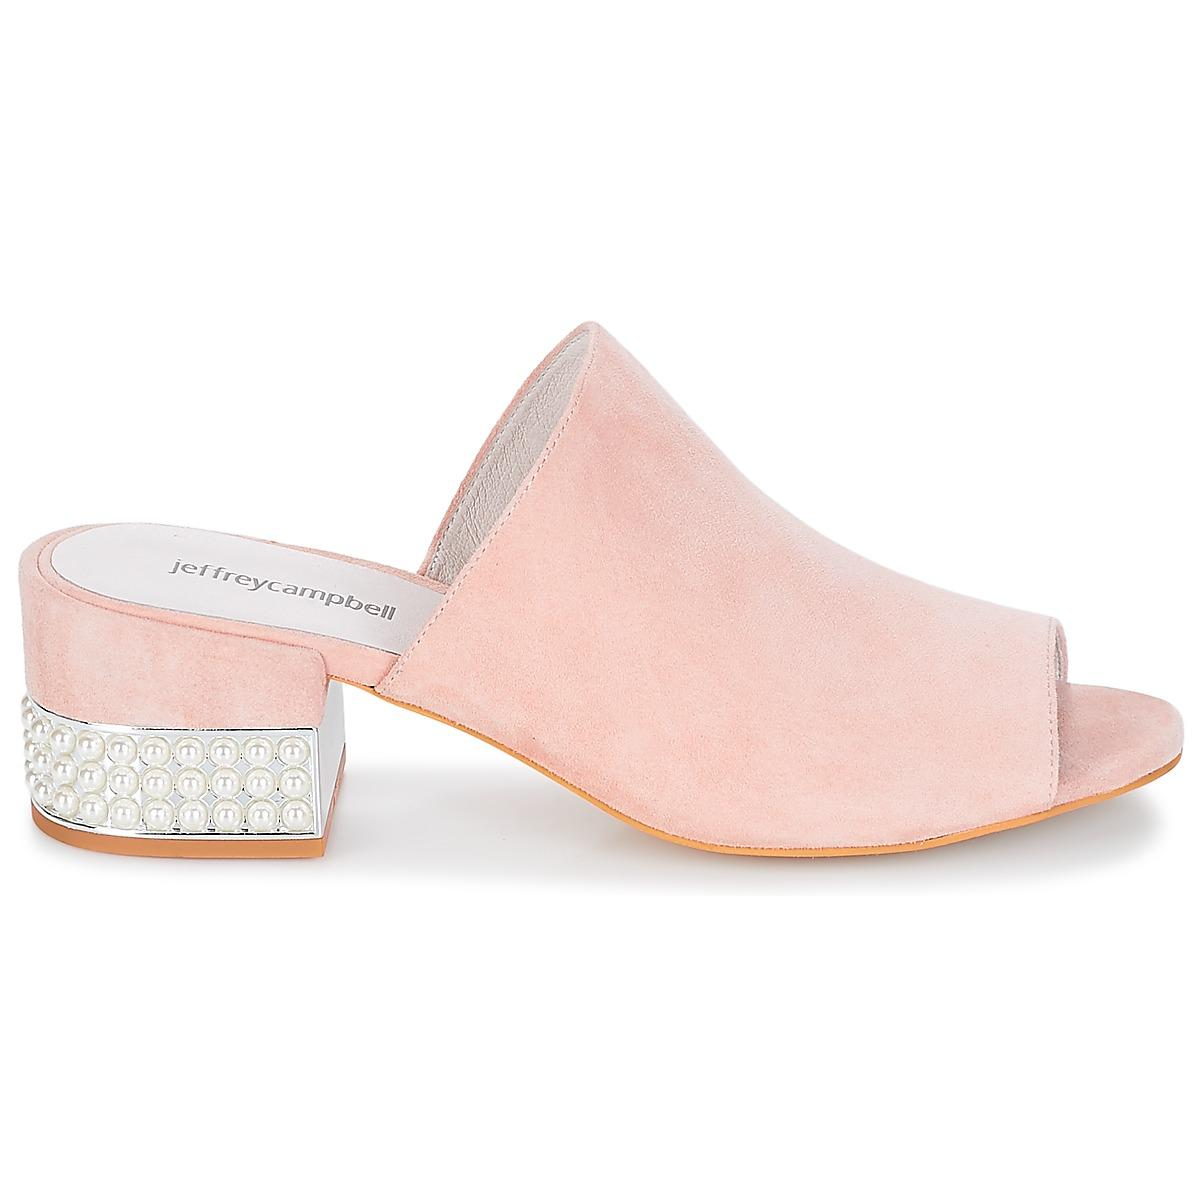 1841bfb34d2 Jeffrey Campbell Arcita Mules   Casual Shoes in Pink - Lyst